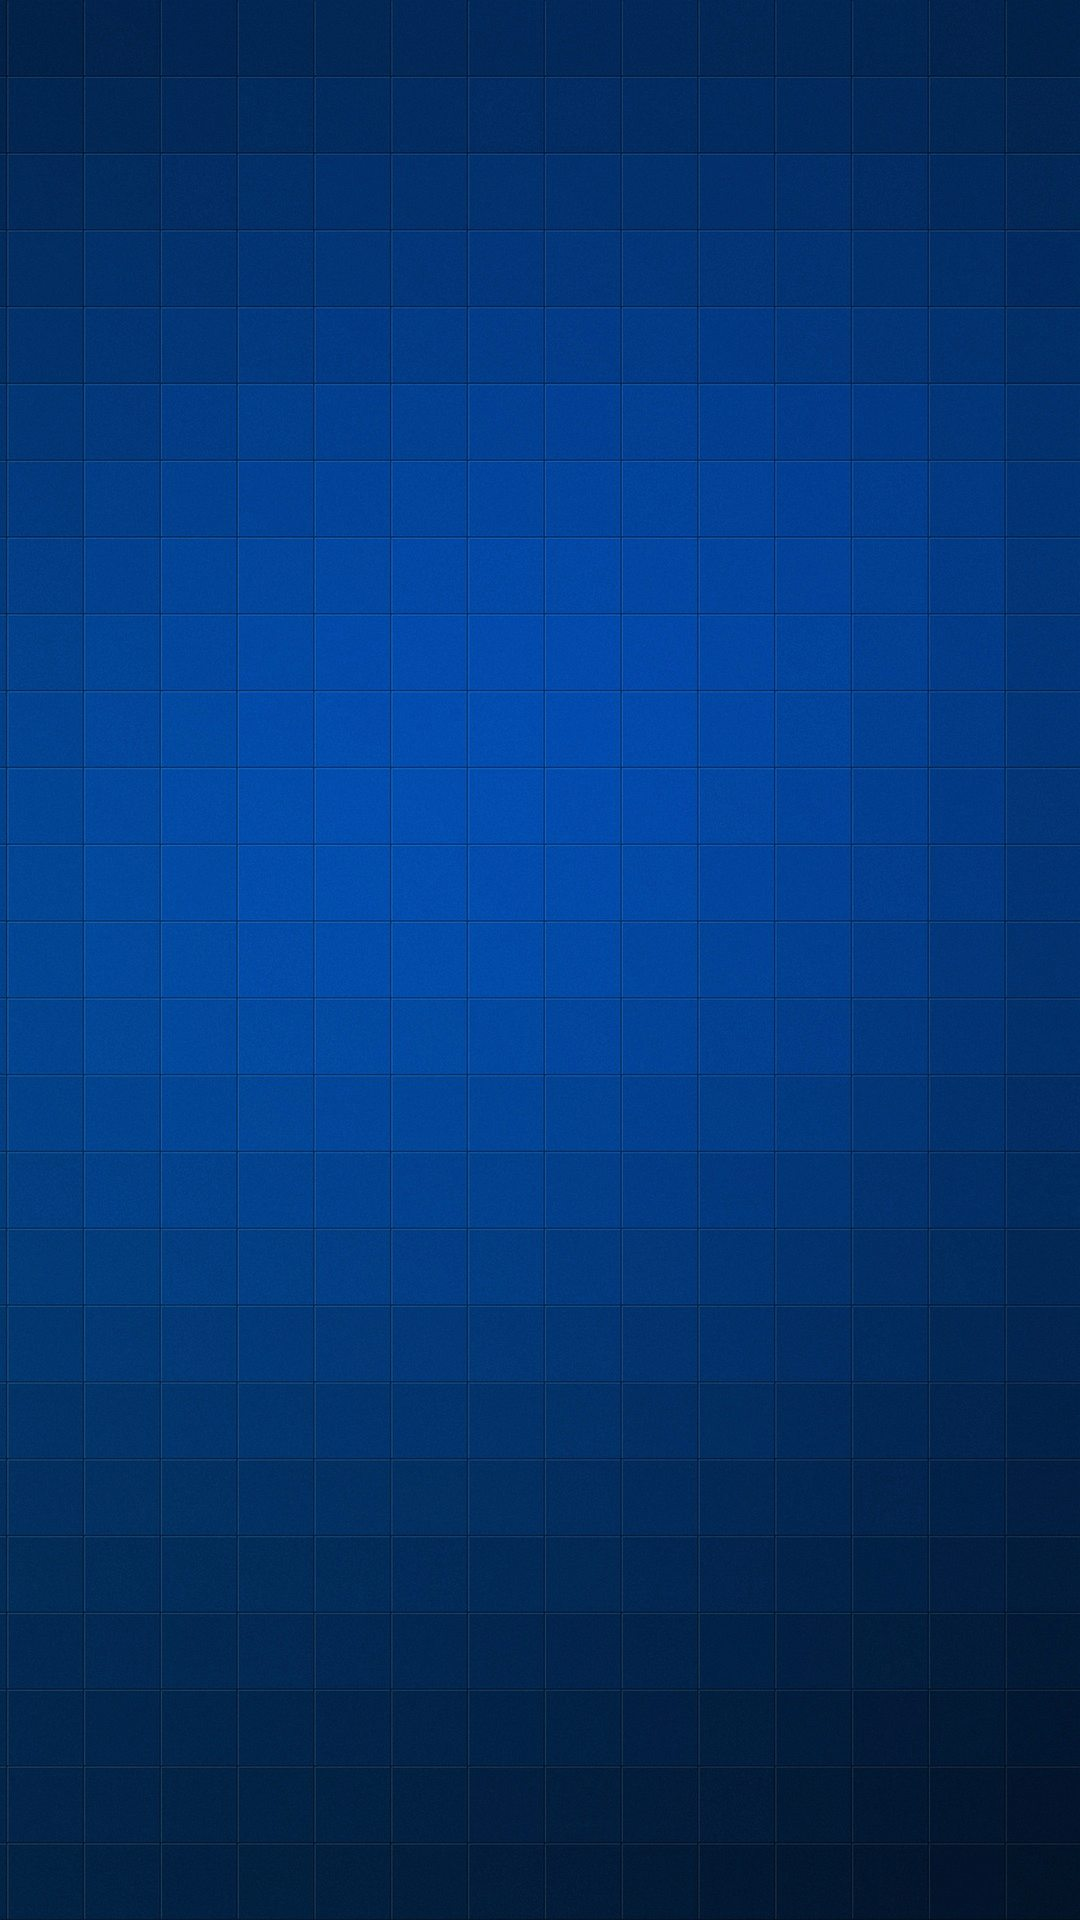 Blue Smartphone Wallpaper